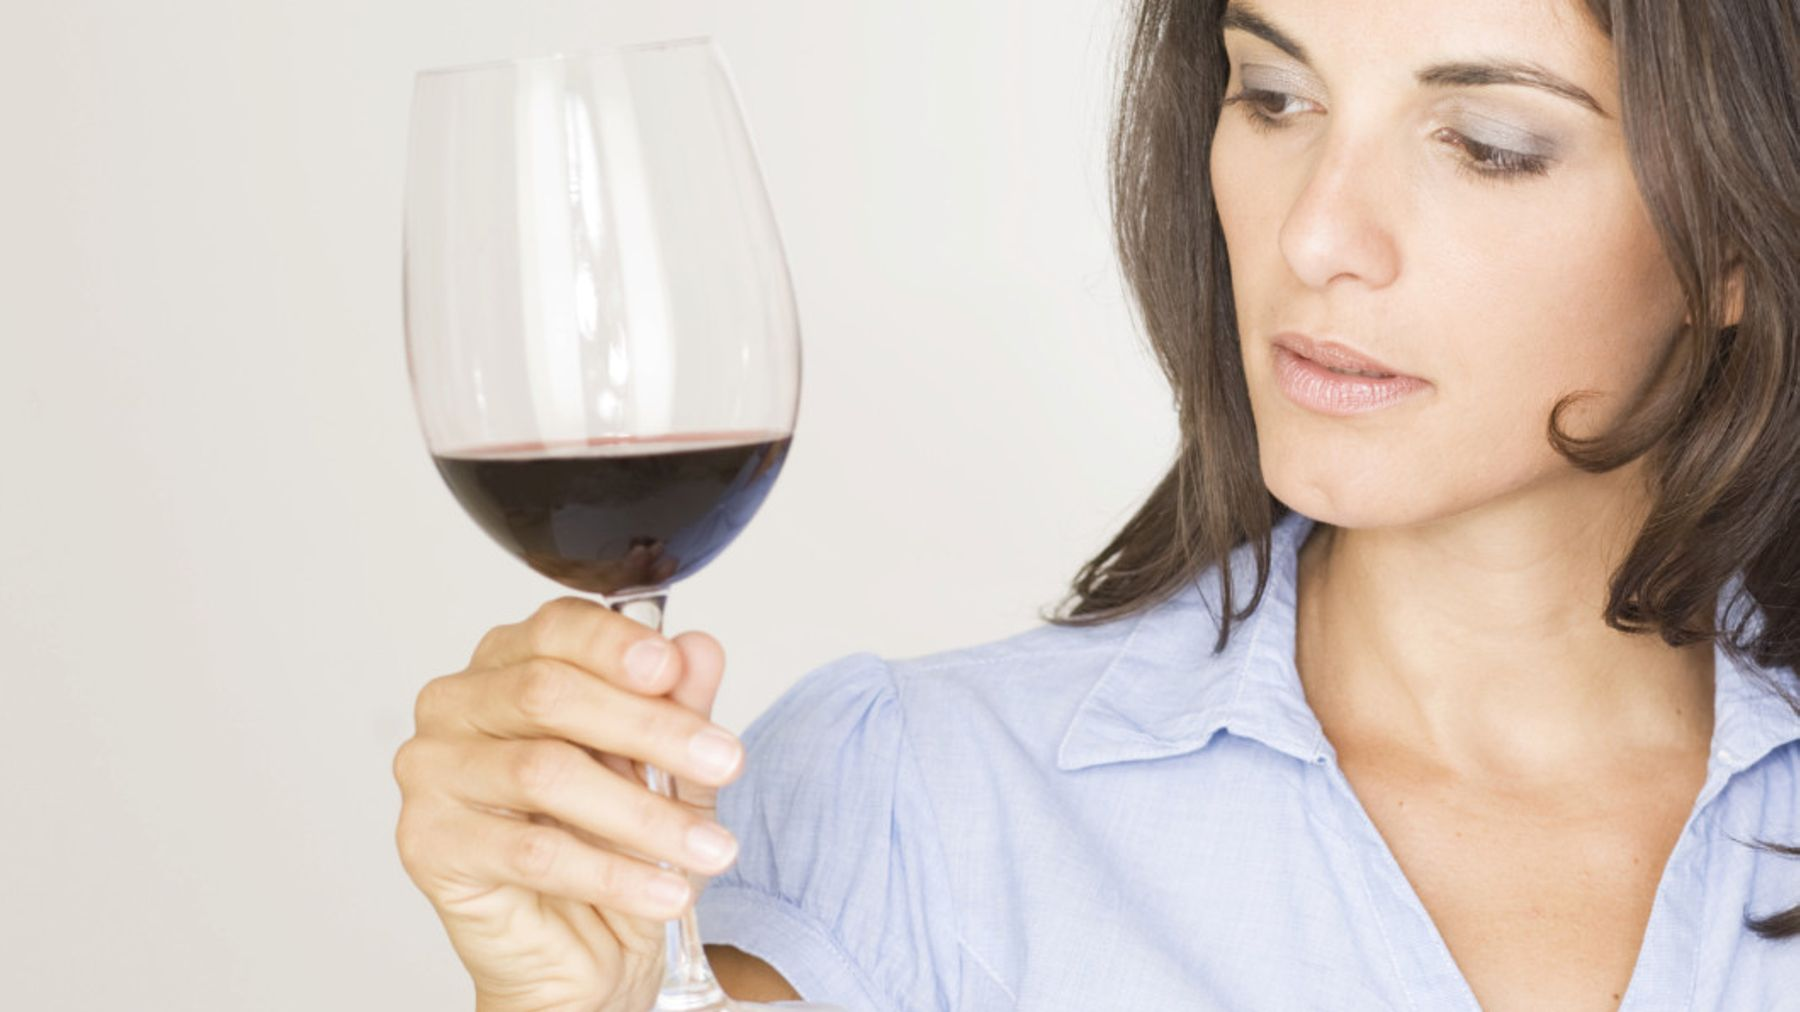 is your nightly glass of wine hurting your sleep